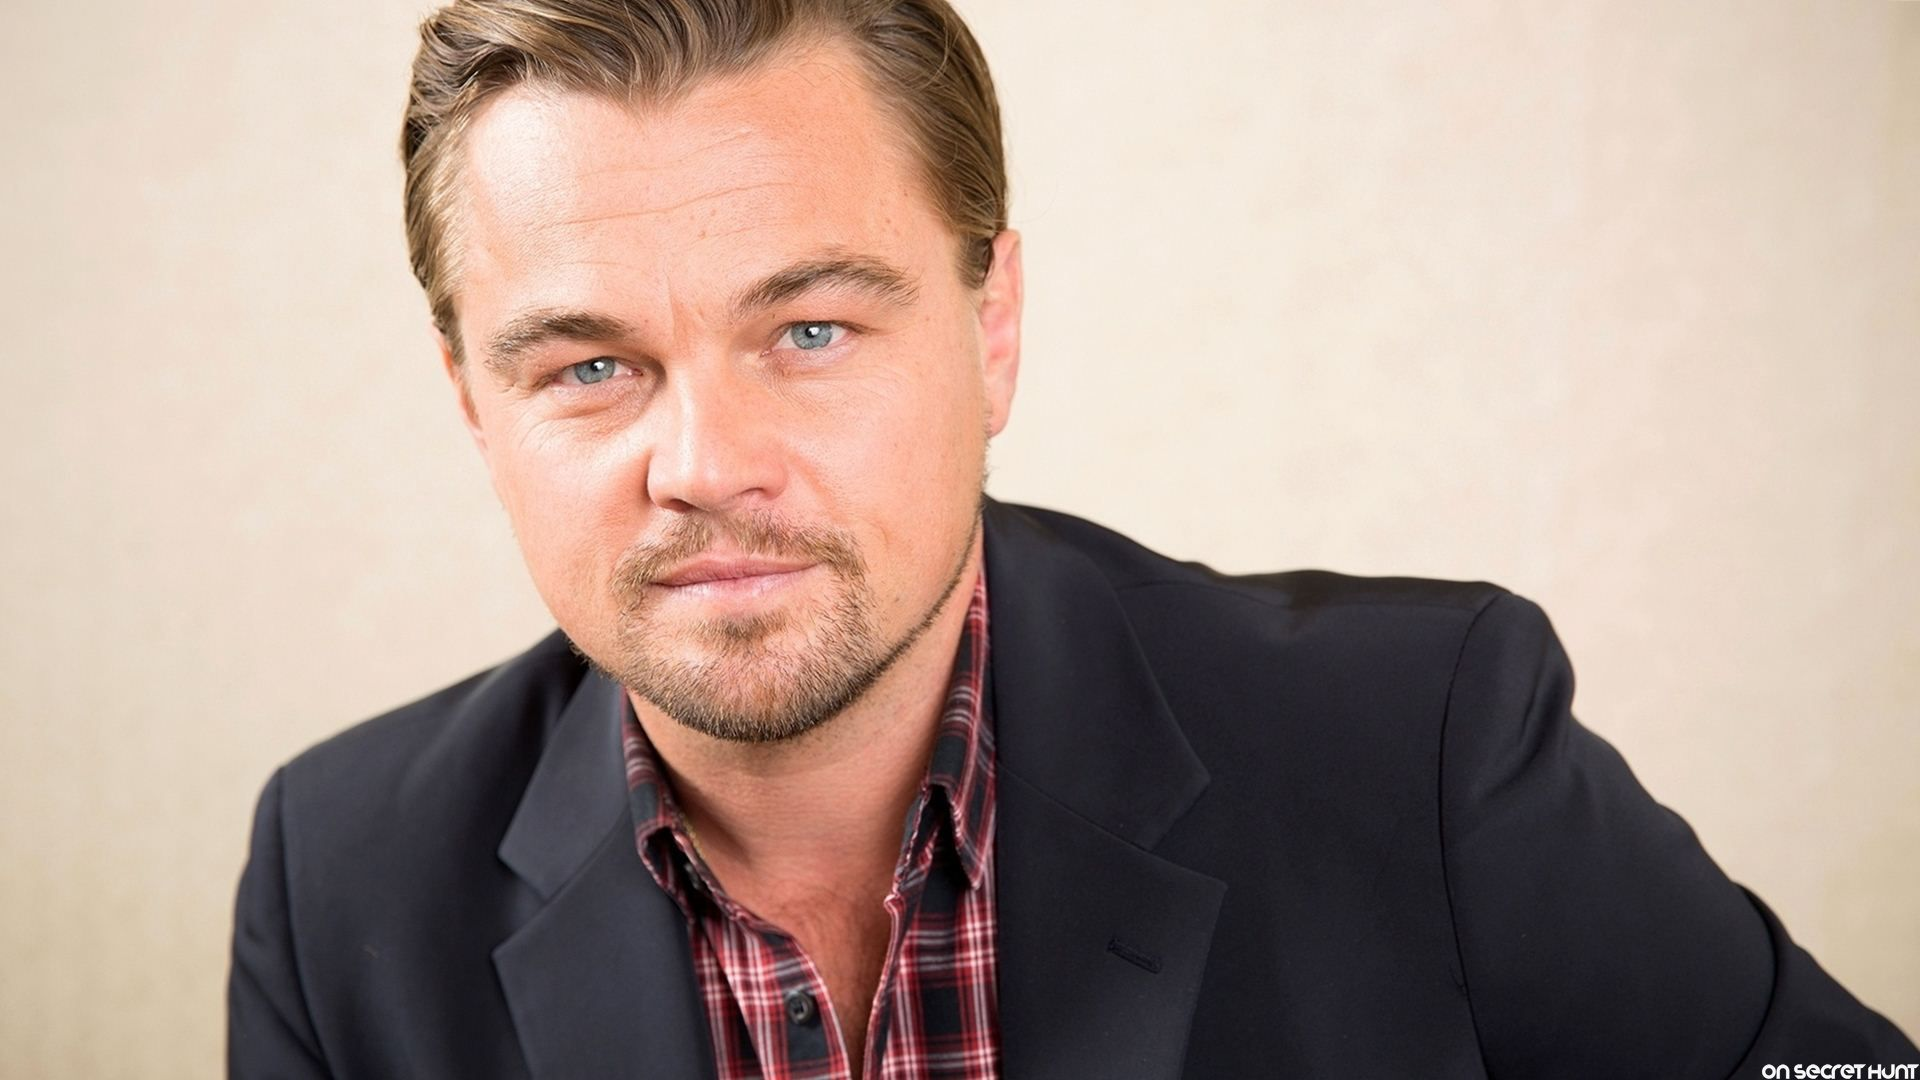 leonardo-dicaprio-2015-beach-wallpaper-4